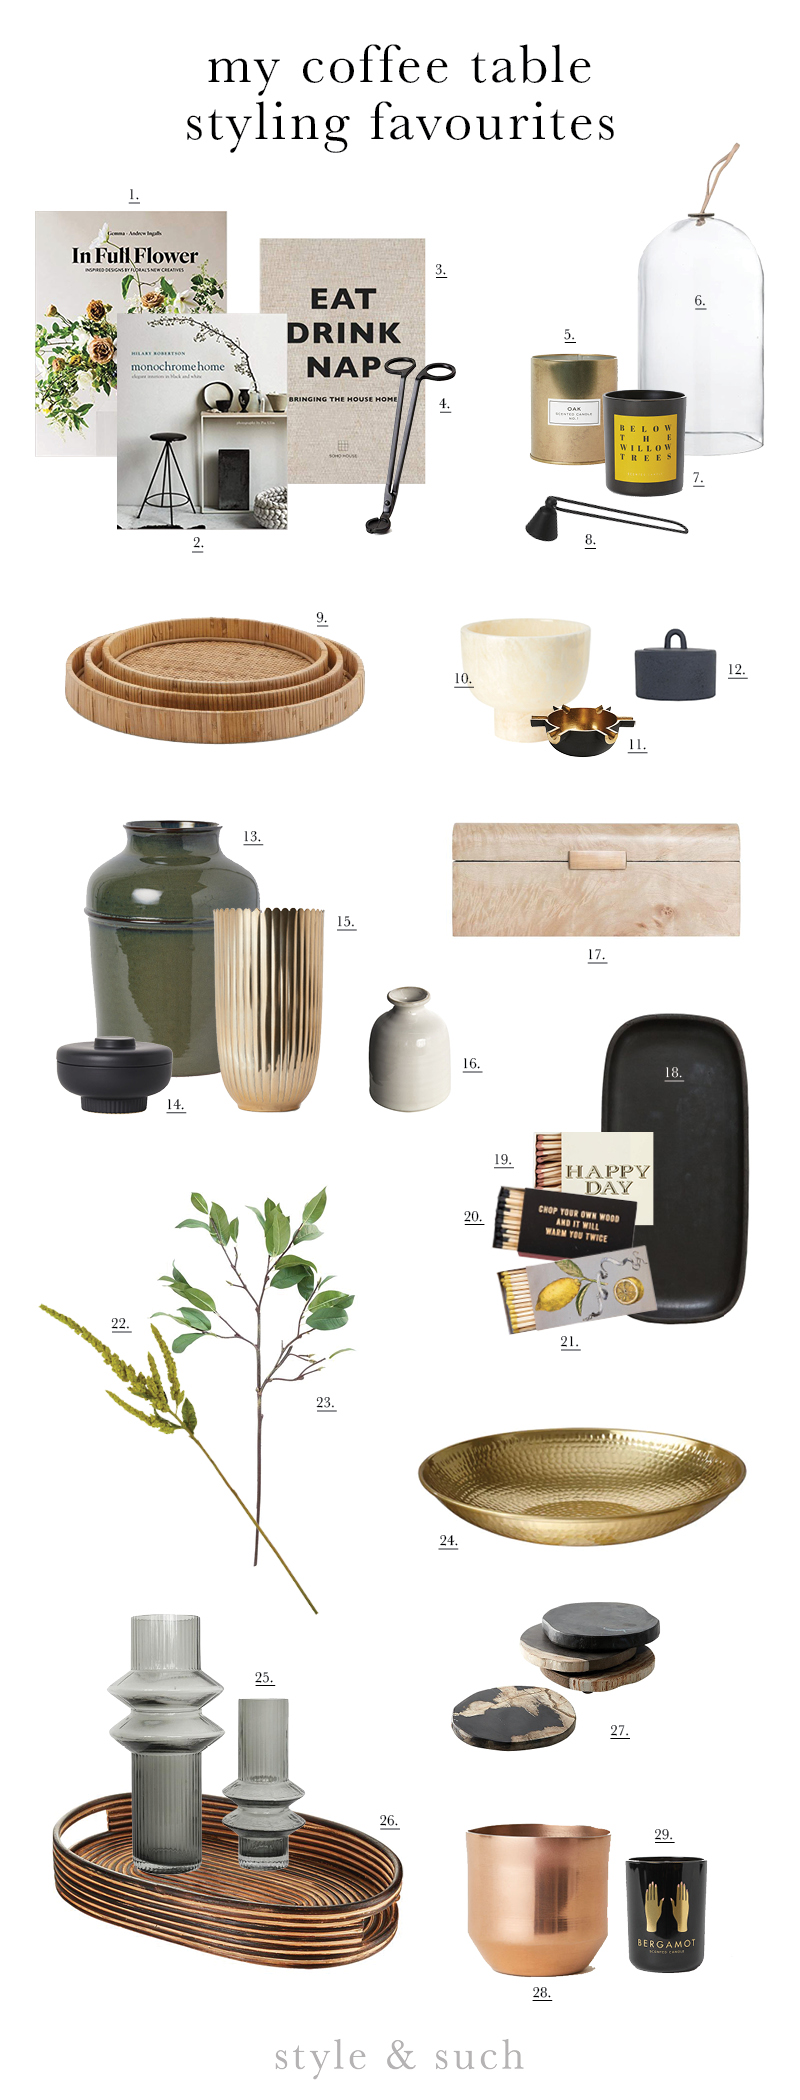 1.  In Full Flower  | 2.  Monochrome Home  | 3.  Eat Drink Nap  | 4.  Wick Trimmer  | 5.  Gold Candle  | 6.  Glass Cloche  | 7.  Willow Trees Candle  | 8.  Candle Snuffer  | 9.  Rattan Trays  | 10.  Marble Onyx Tealight Holder  | 11.  Spoke Tealight Holder  | 12.  Cast Iron Jar  | 13.  Large Earthware Vase  | 14.  Stoneware Jar  | 15.  Gold Vase  | 16.  Roald Mini Vase  | 17.  Burl Box  | 18.  Serpentine Tray  | 19.  Happy Day Match Box  | 20.  Lumberjack Match Box  | 21.  Lemons Matchbox  | 22.  Faux Amaranthus Stem  | 23.  Faux Laurel Stem  | 24.  Gold Bowl  | 25.  Rorik Vases  | 26.  Rattan Serving Tray  | 27.  Petrified Wood Coasters  | 28.  Copper Plant Pot  | 29.  Bergamot Candle